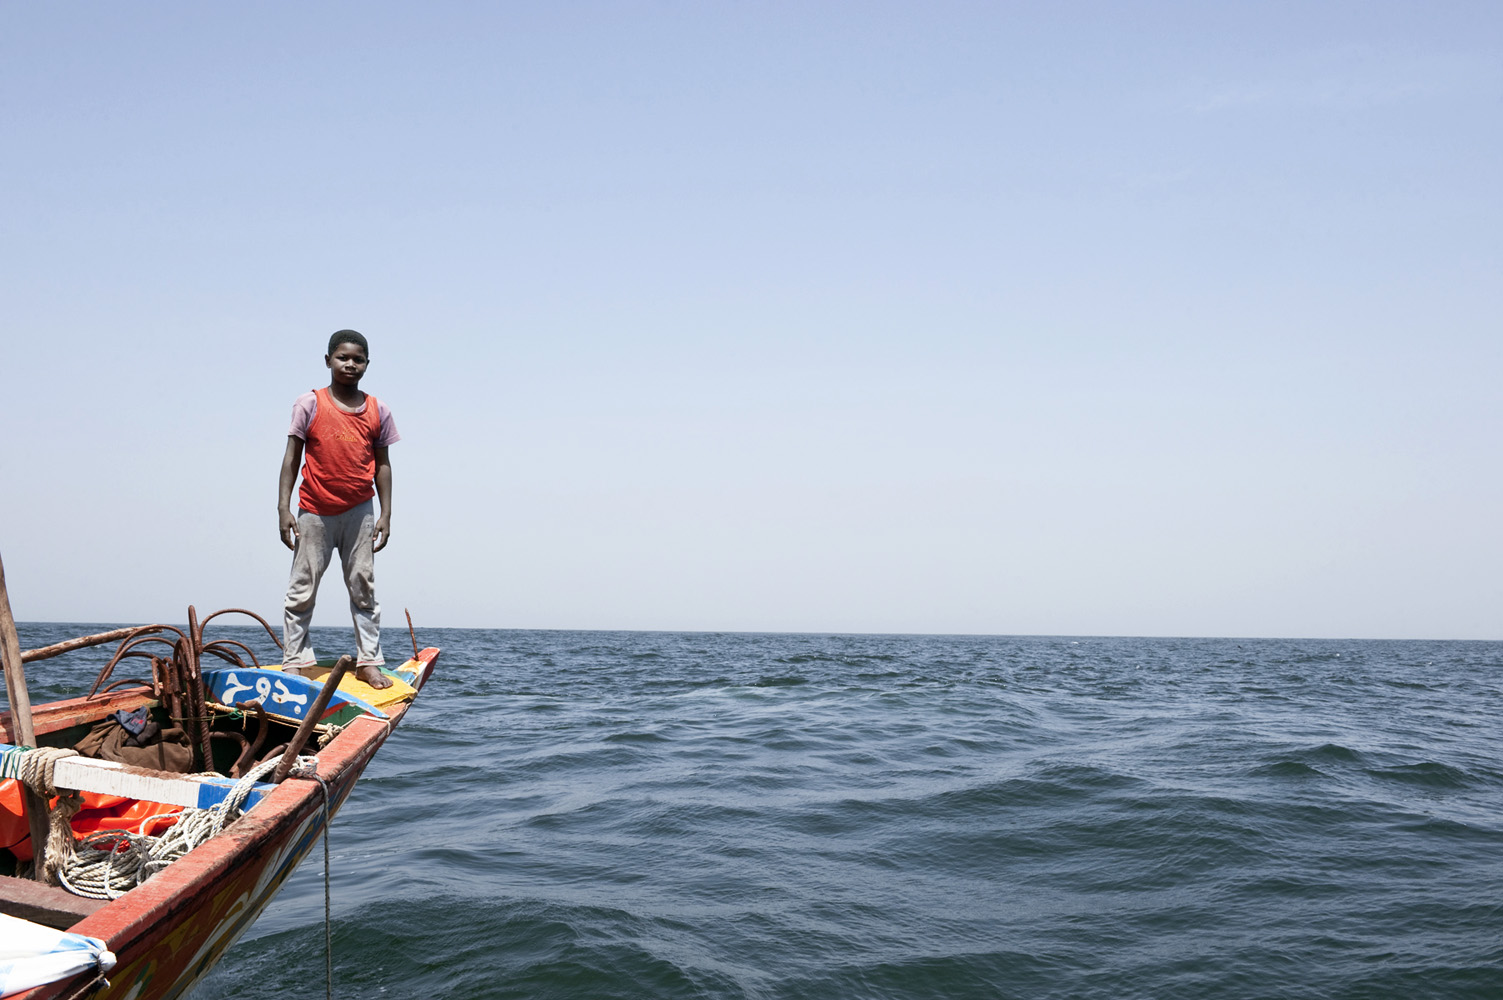 Atlantic Ocean, Senegal, 18 March  2010 Young boy on the Senegalese Pirogue fishing boat 'Sophie Fall' 46 nautical miles offshore, out fishing for 10 days.